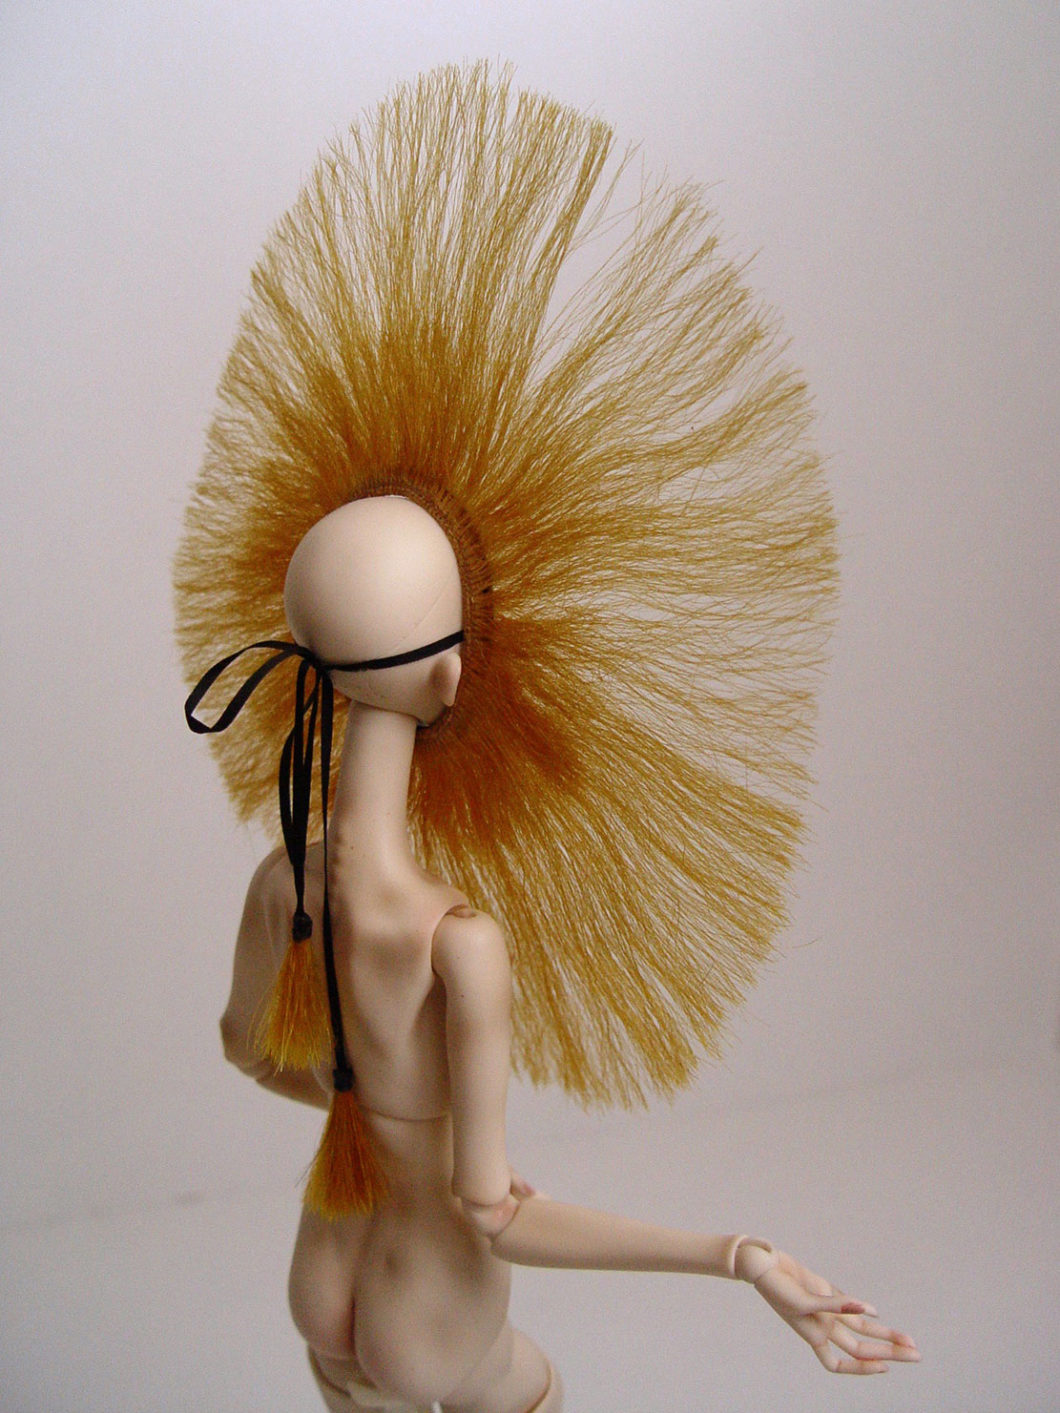 wig popovy pasha bjd ball jointed doll wig marmite sue enchanted Mdvanii Barbie doll wig yatabazah luxury wigs doll hair artist doll vintage japan